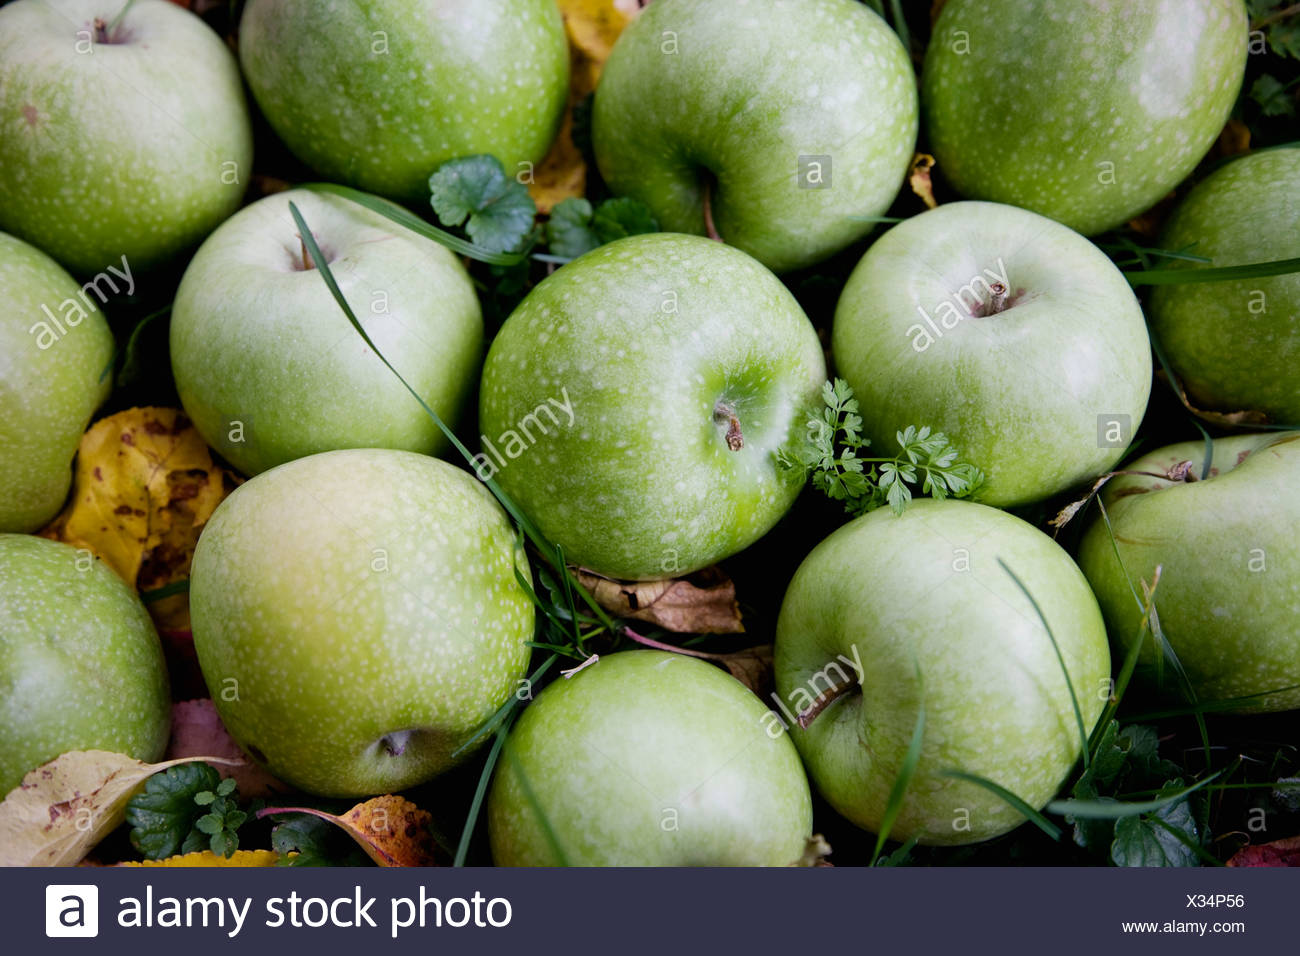 Green apples and leafs - Stock Image